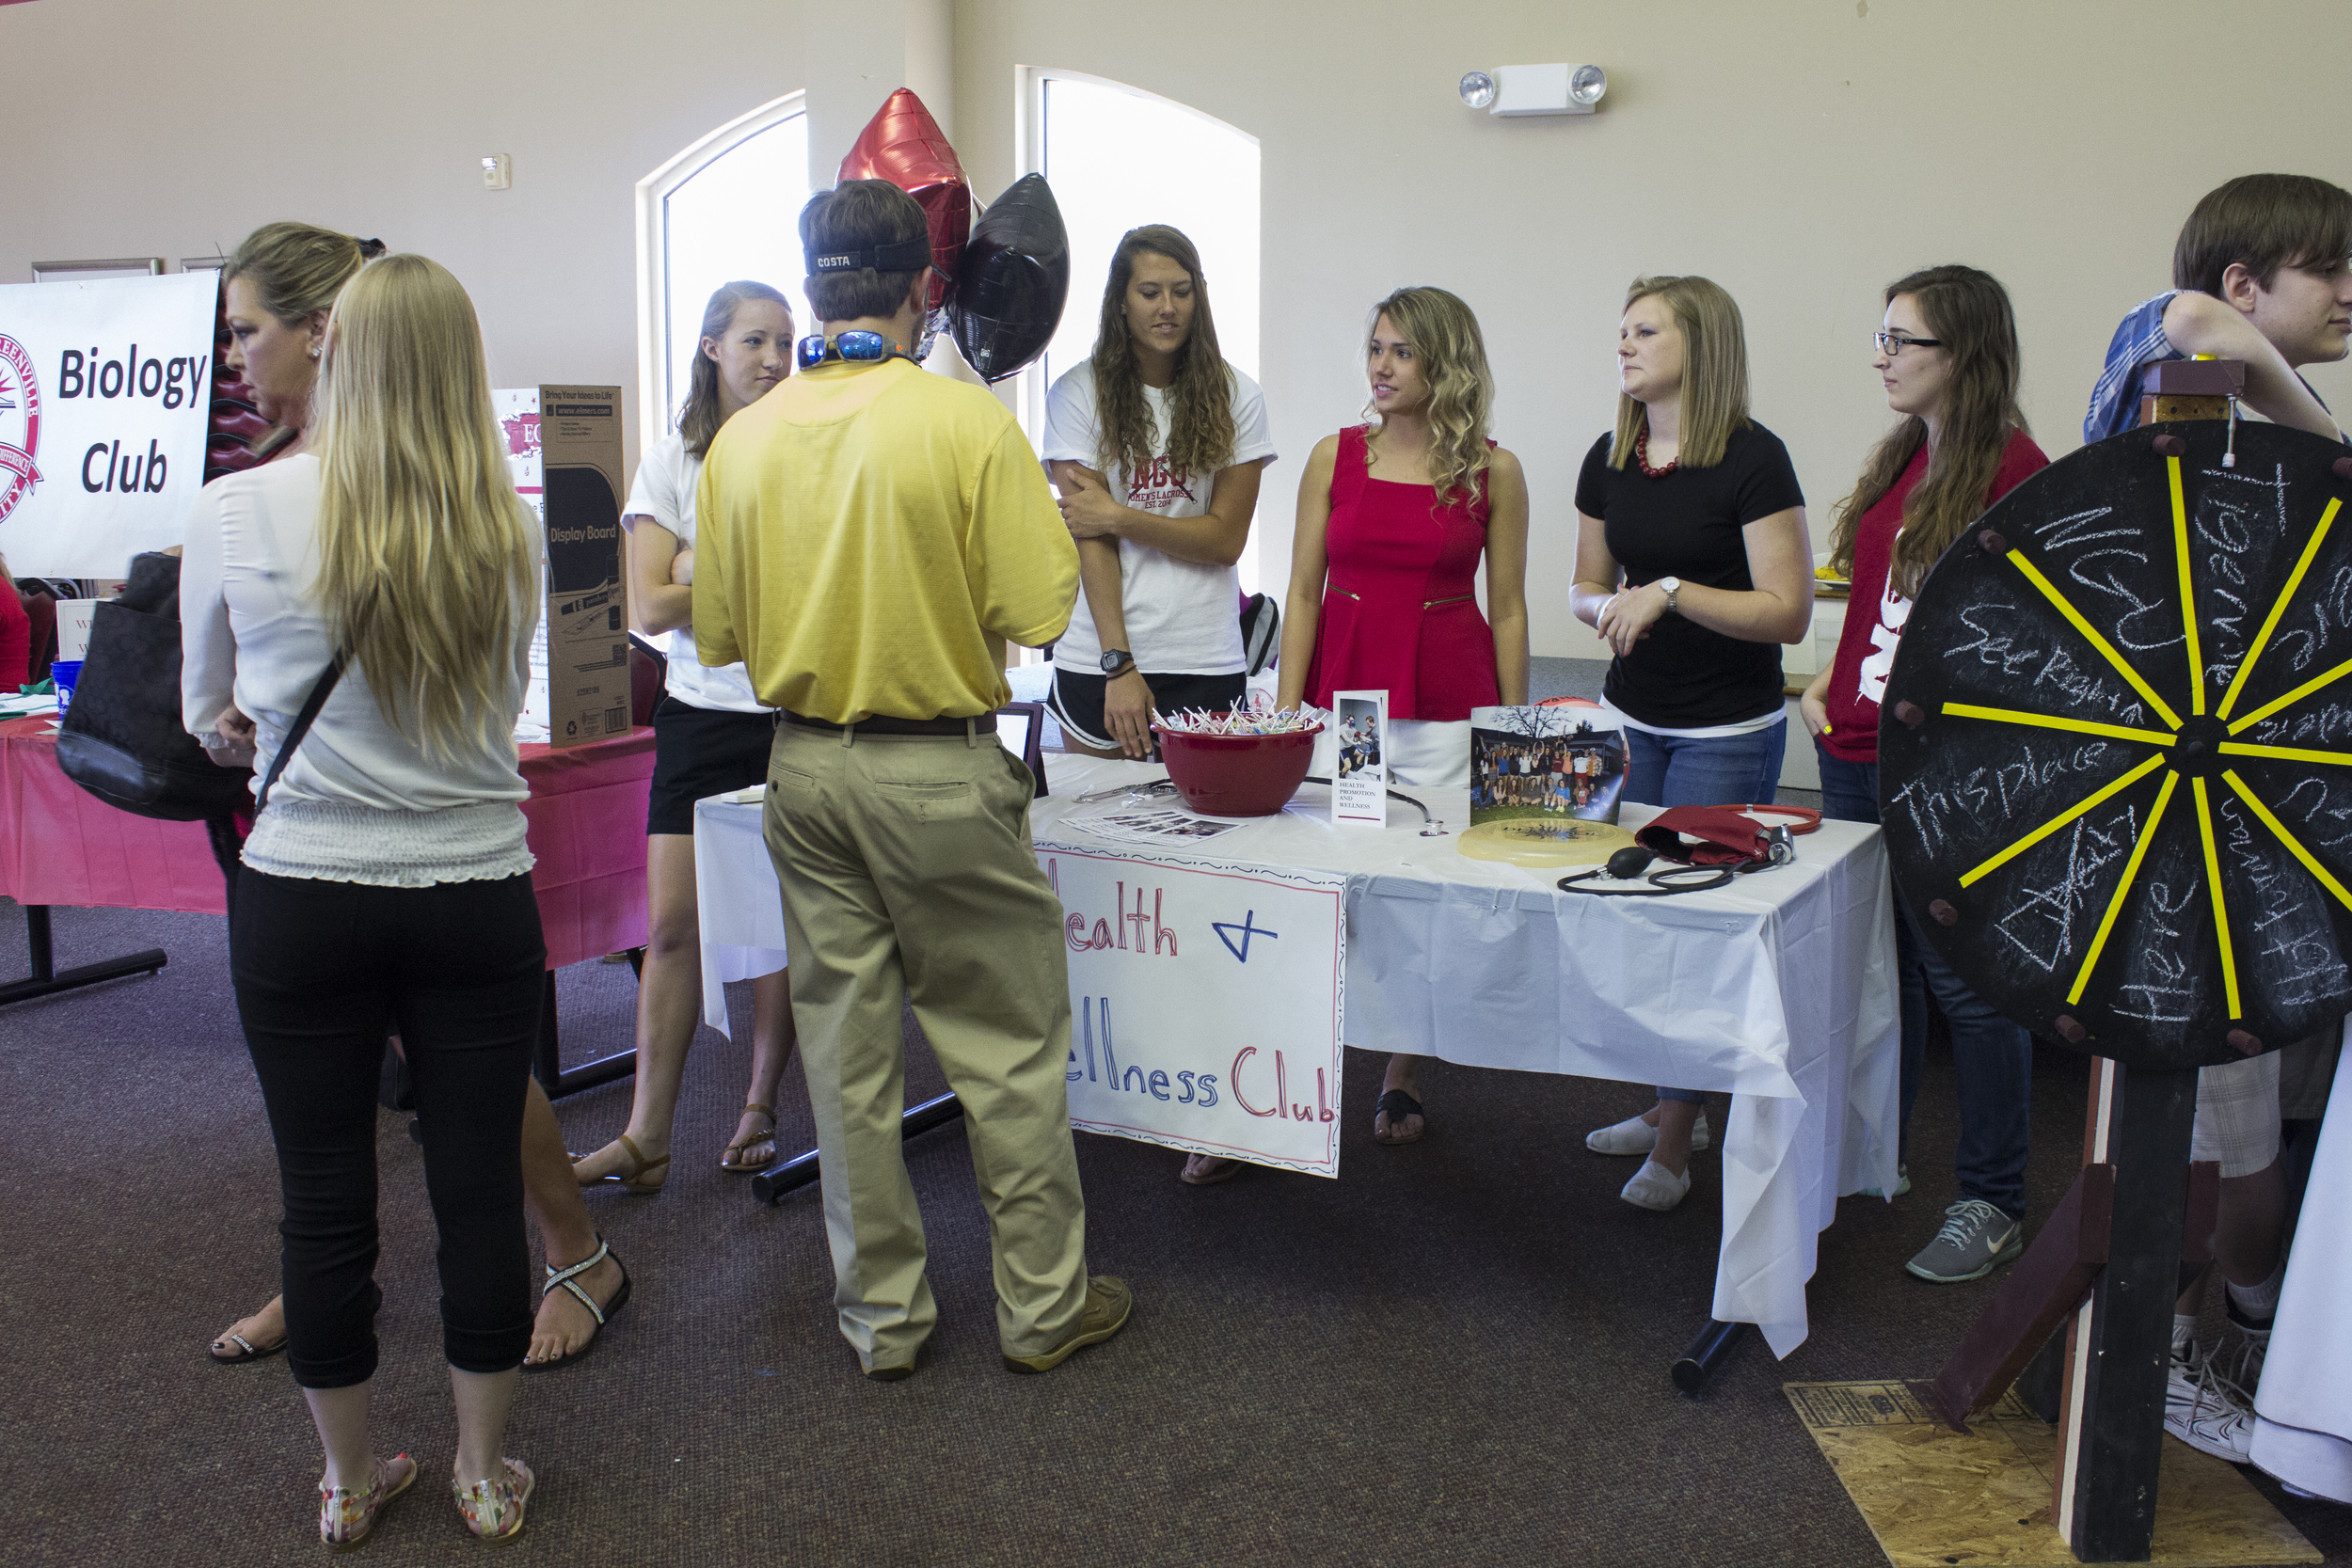 Some of the heath and wellness majors explain what opportunities they have within their major to those who pass by.